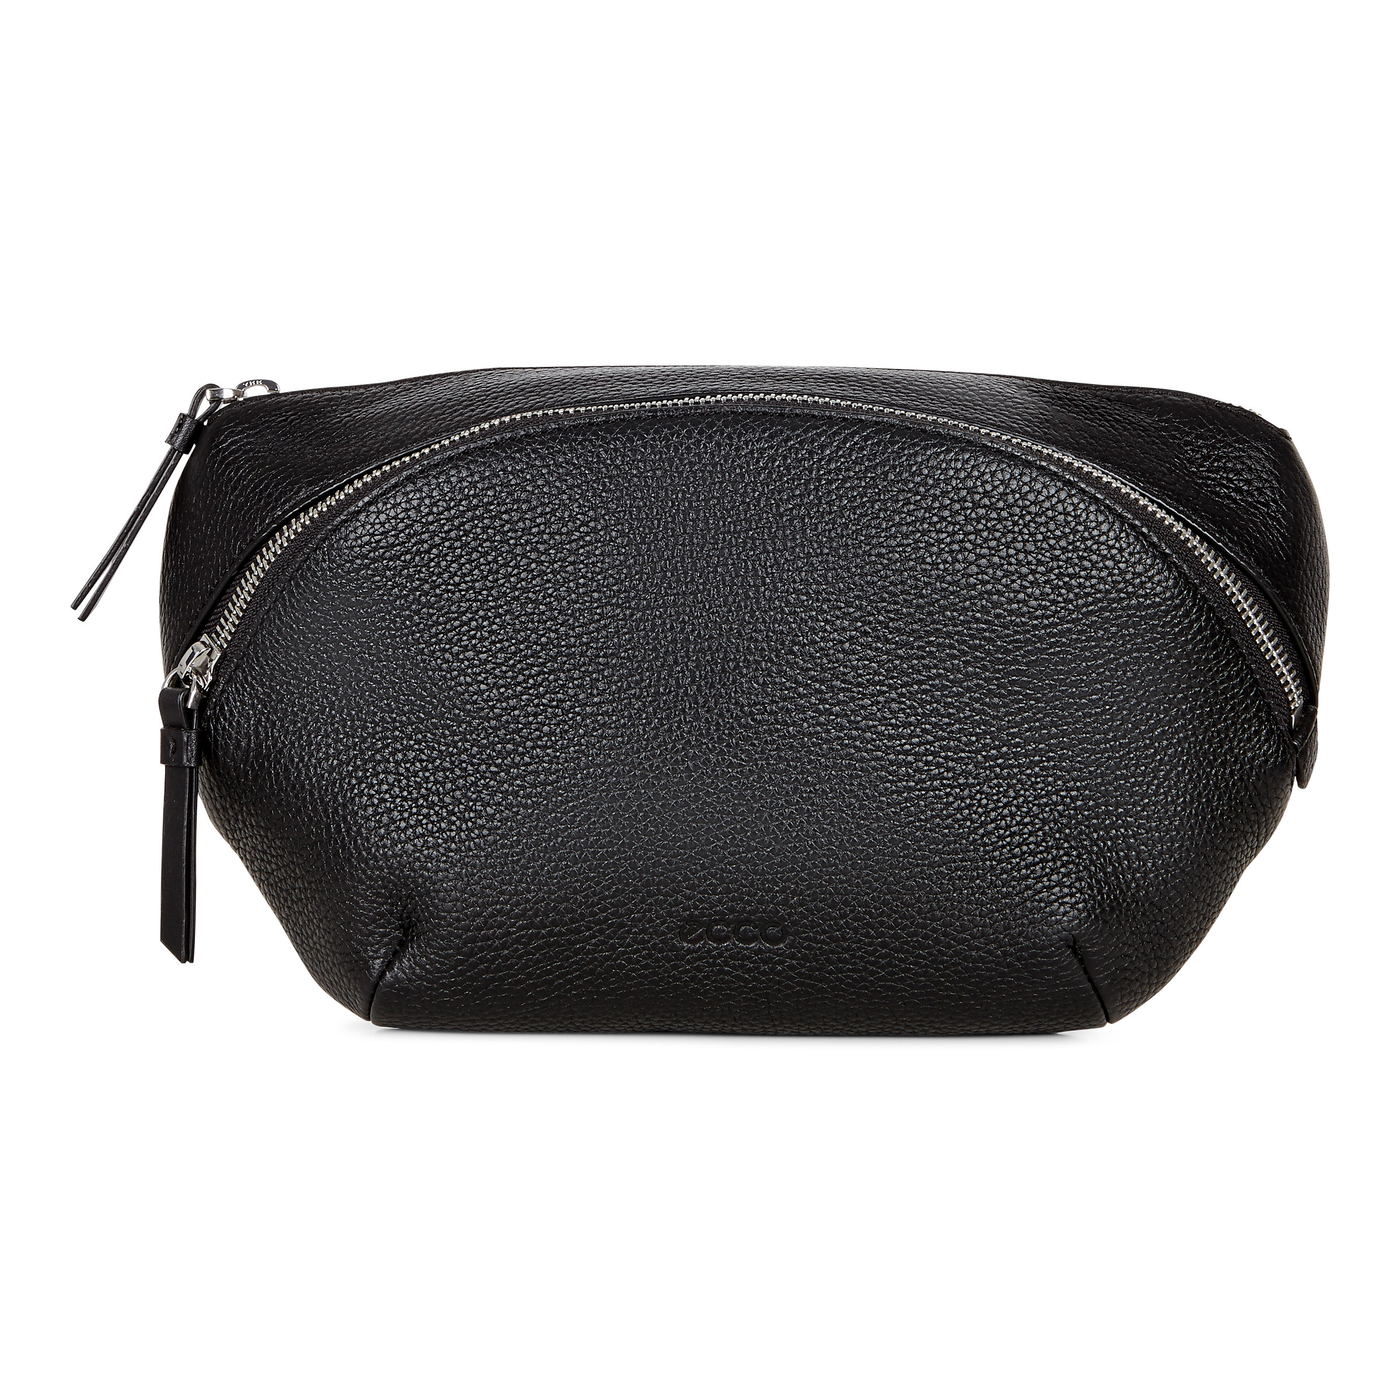 ECCO SP 3 Sling Bag